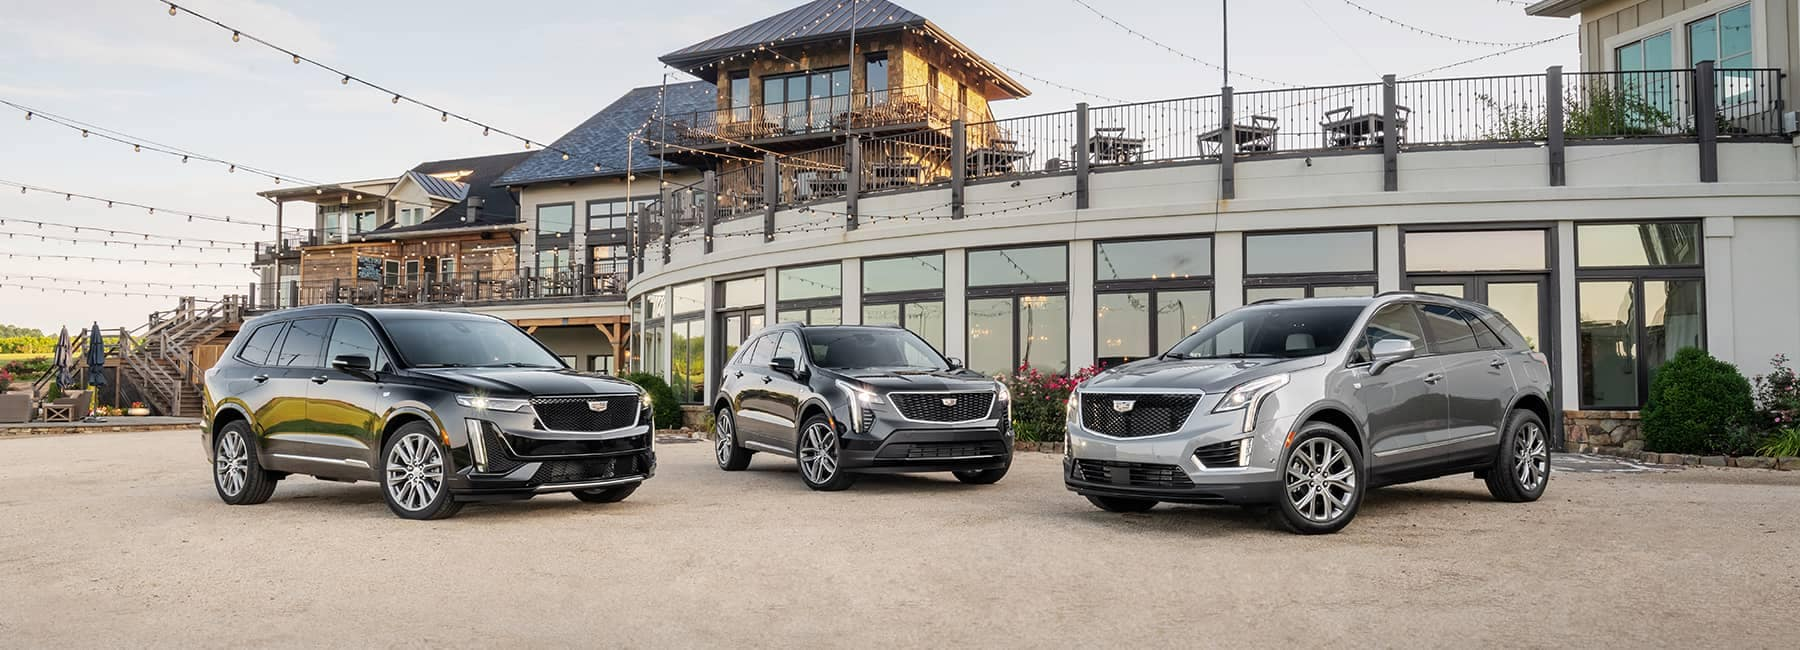 Three Cadillac XT Crossover Models Parked outside of an upscale activity and dining club